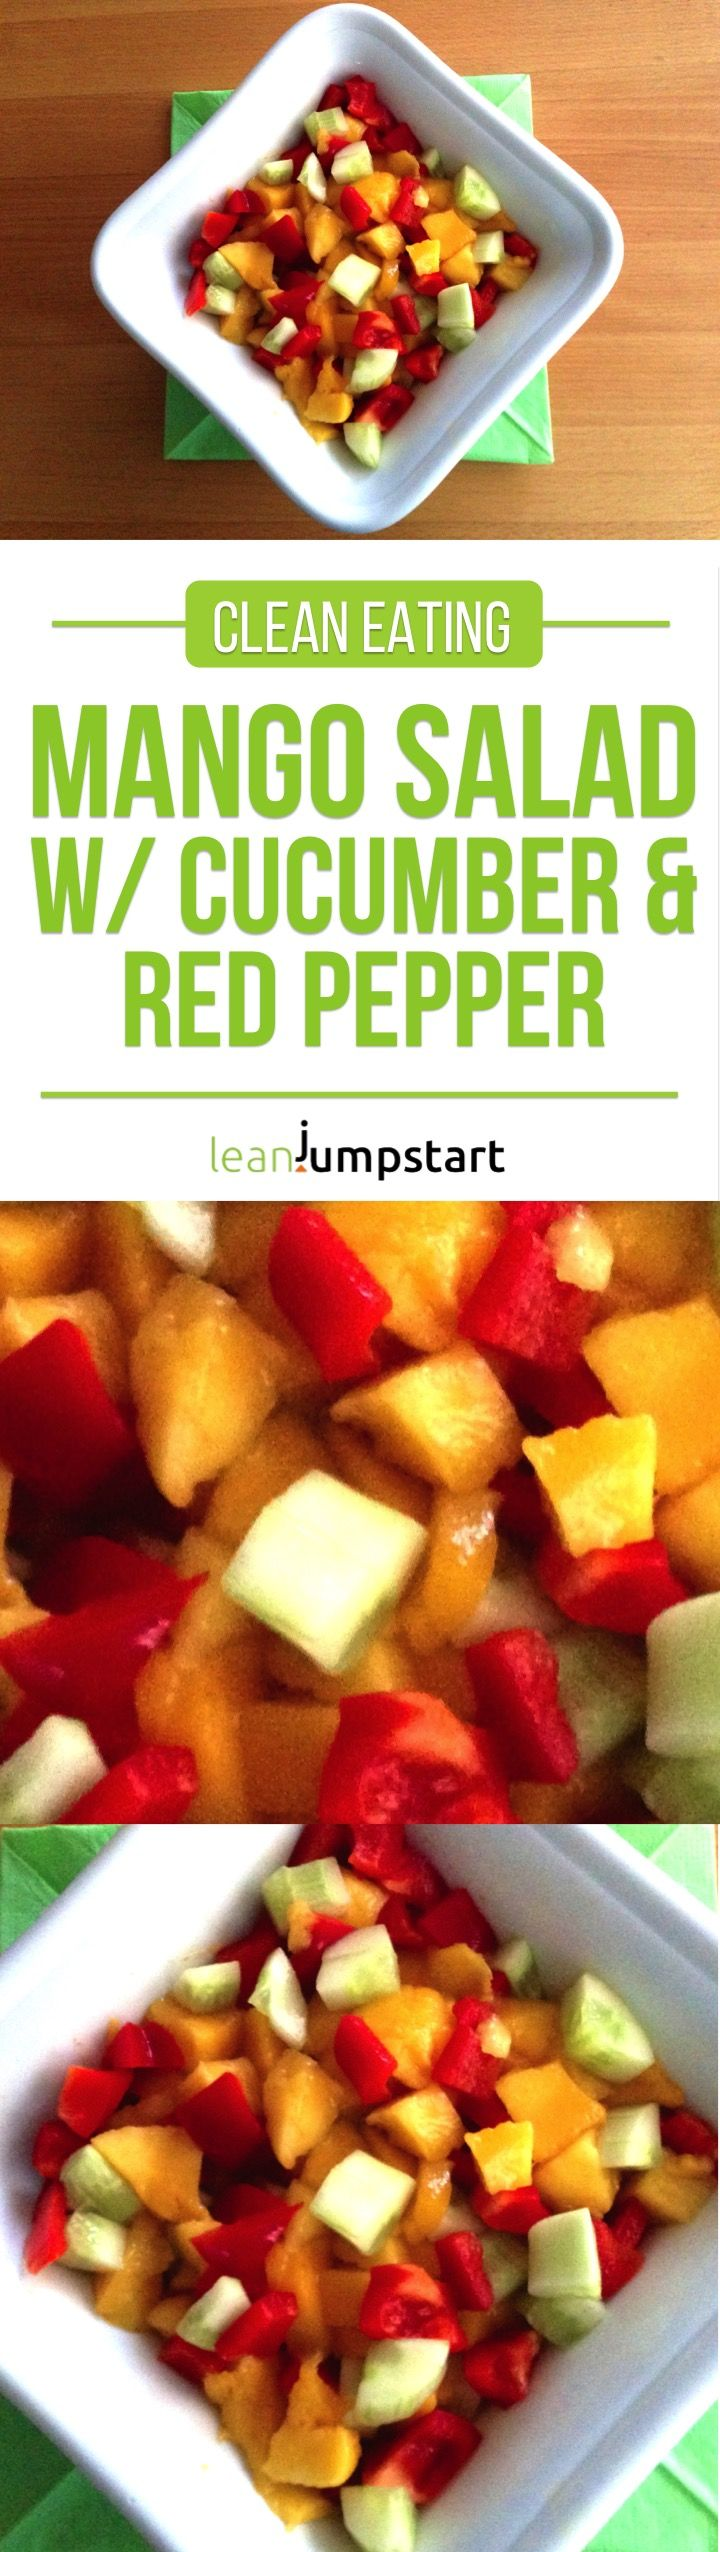 Mango Salad recipe with cucumber and red pepper: a lean clean eating salad